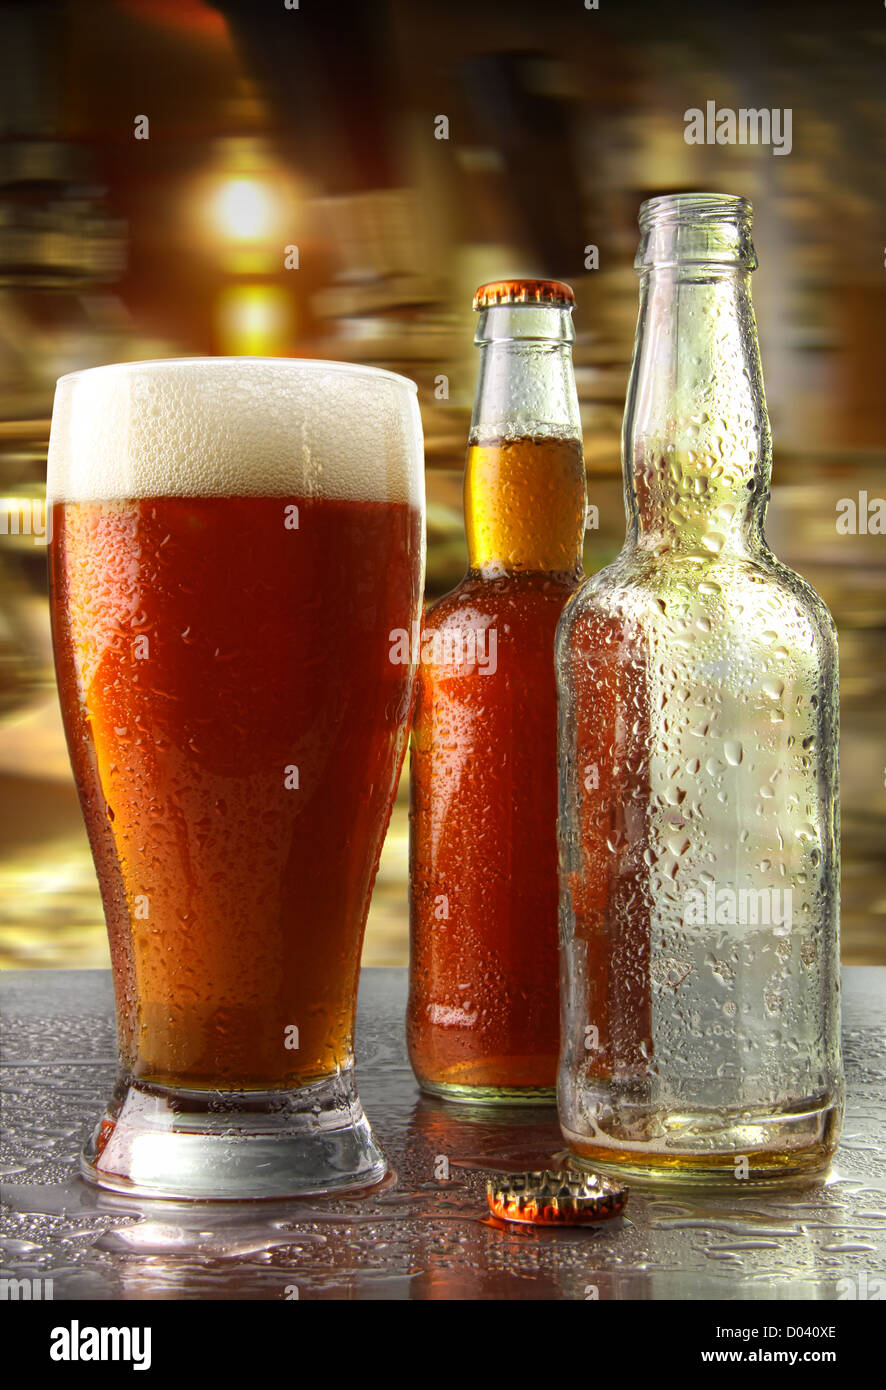 Glass of beer with bottles on counter - Stock Image